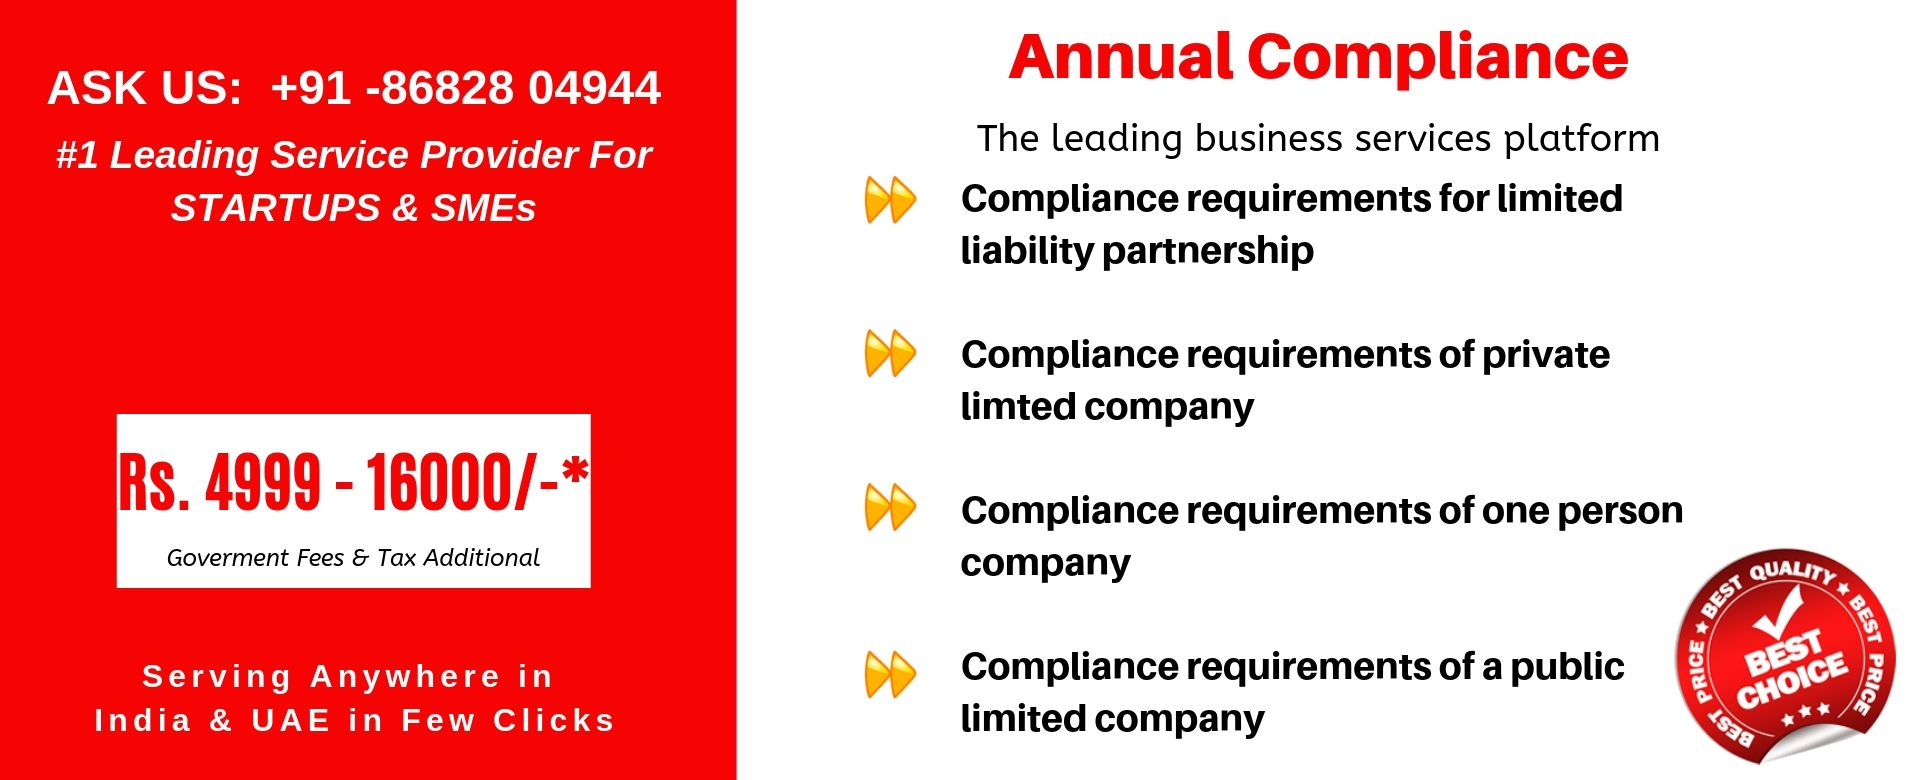 annual compliance in india